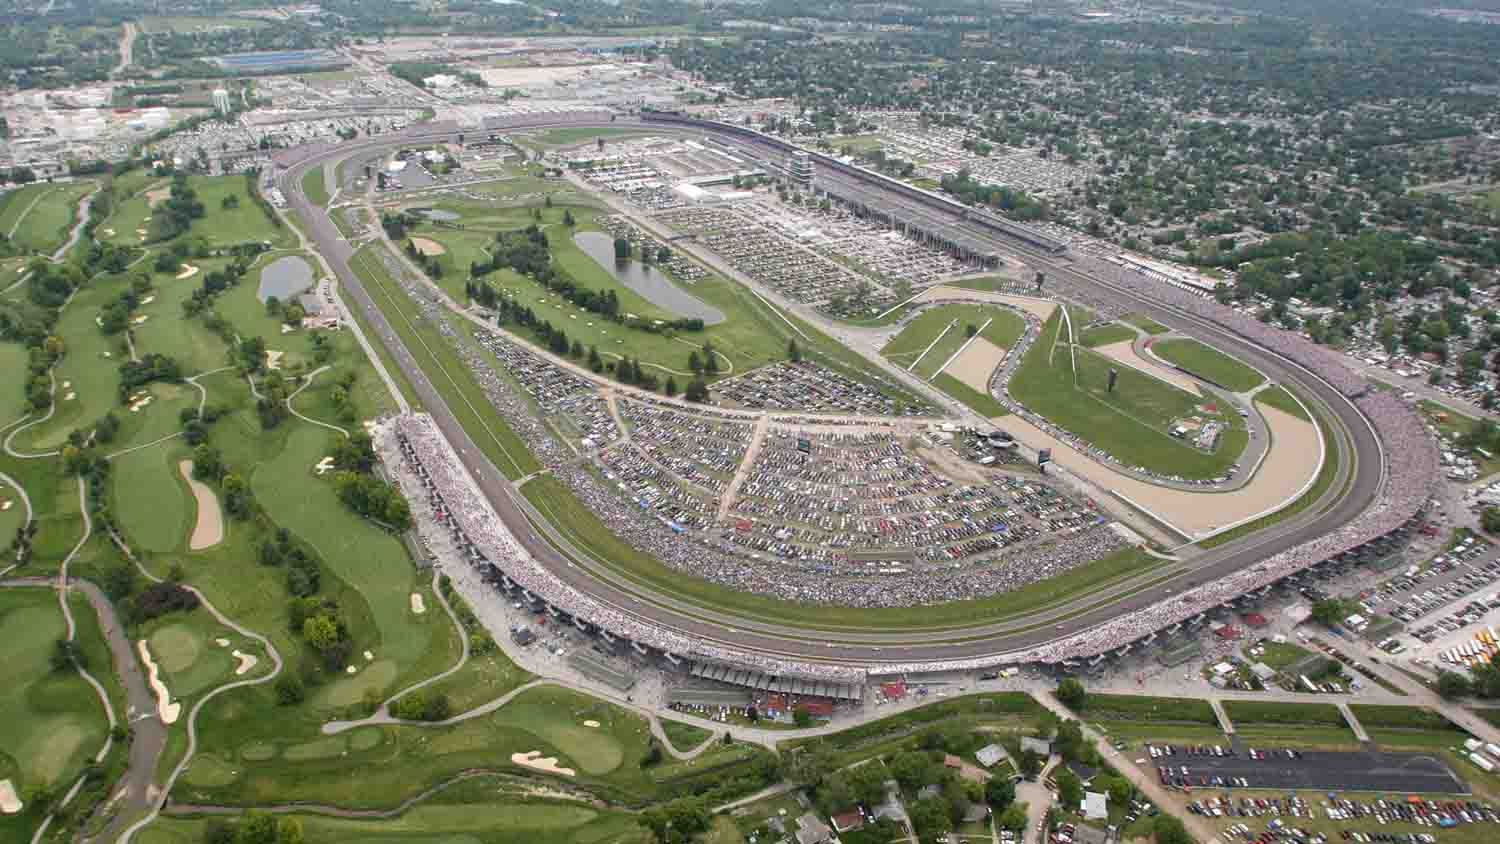 The Indianapolis Motor Speedway Is One Of The Most Famous Race Tracks In The World Also Known As The Brickyard The Nascar Race Tracks Race Track Nascar Racing